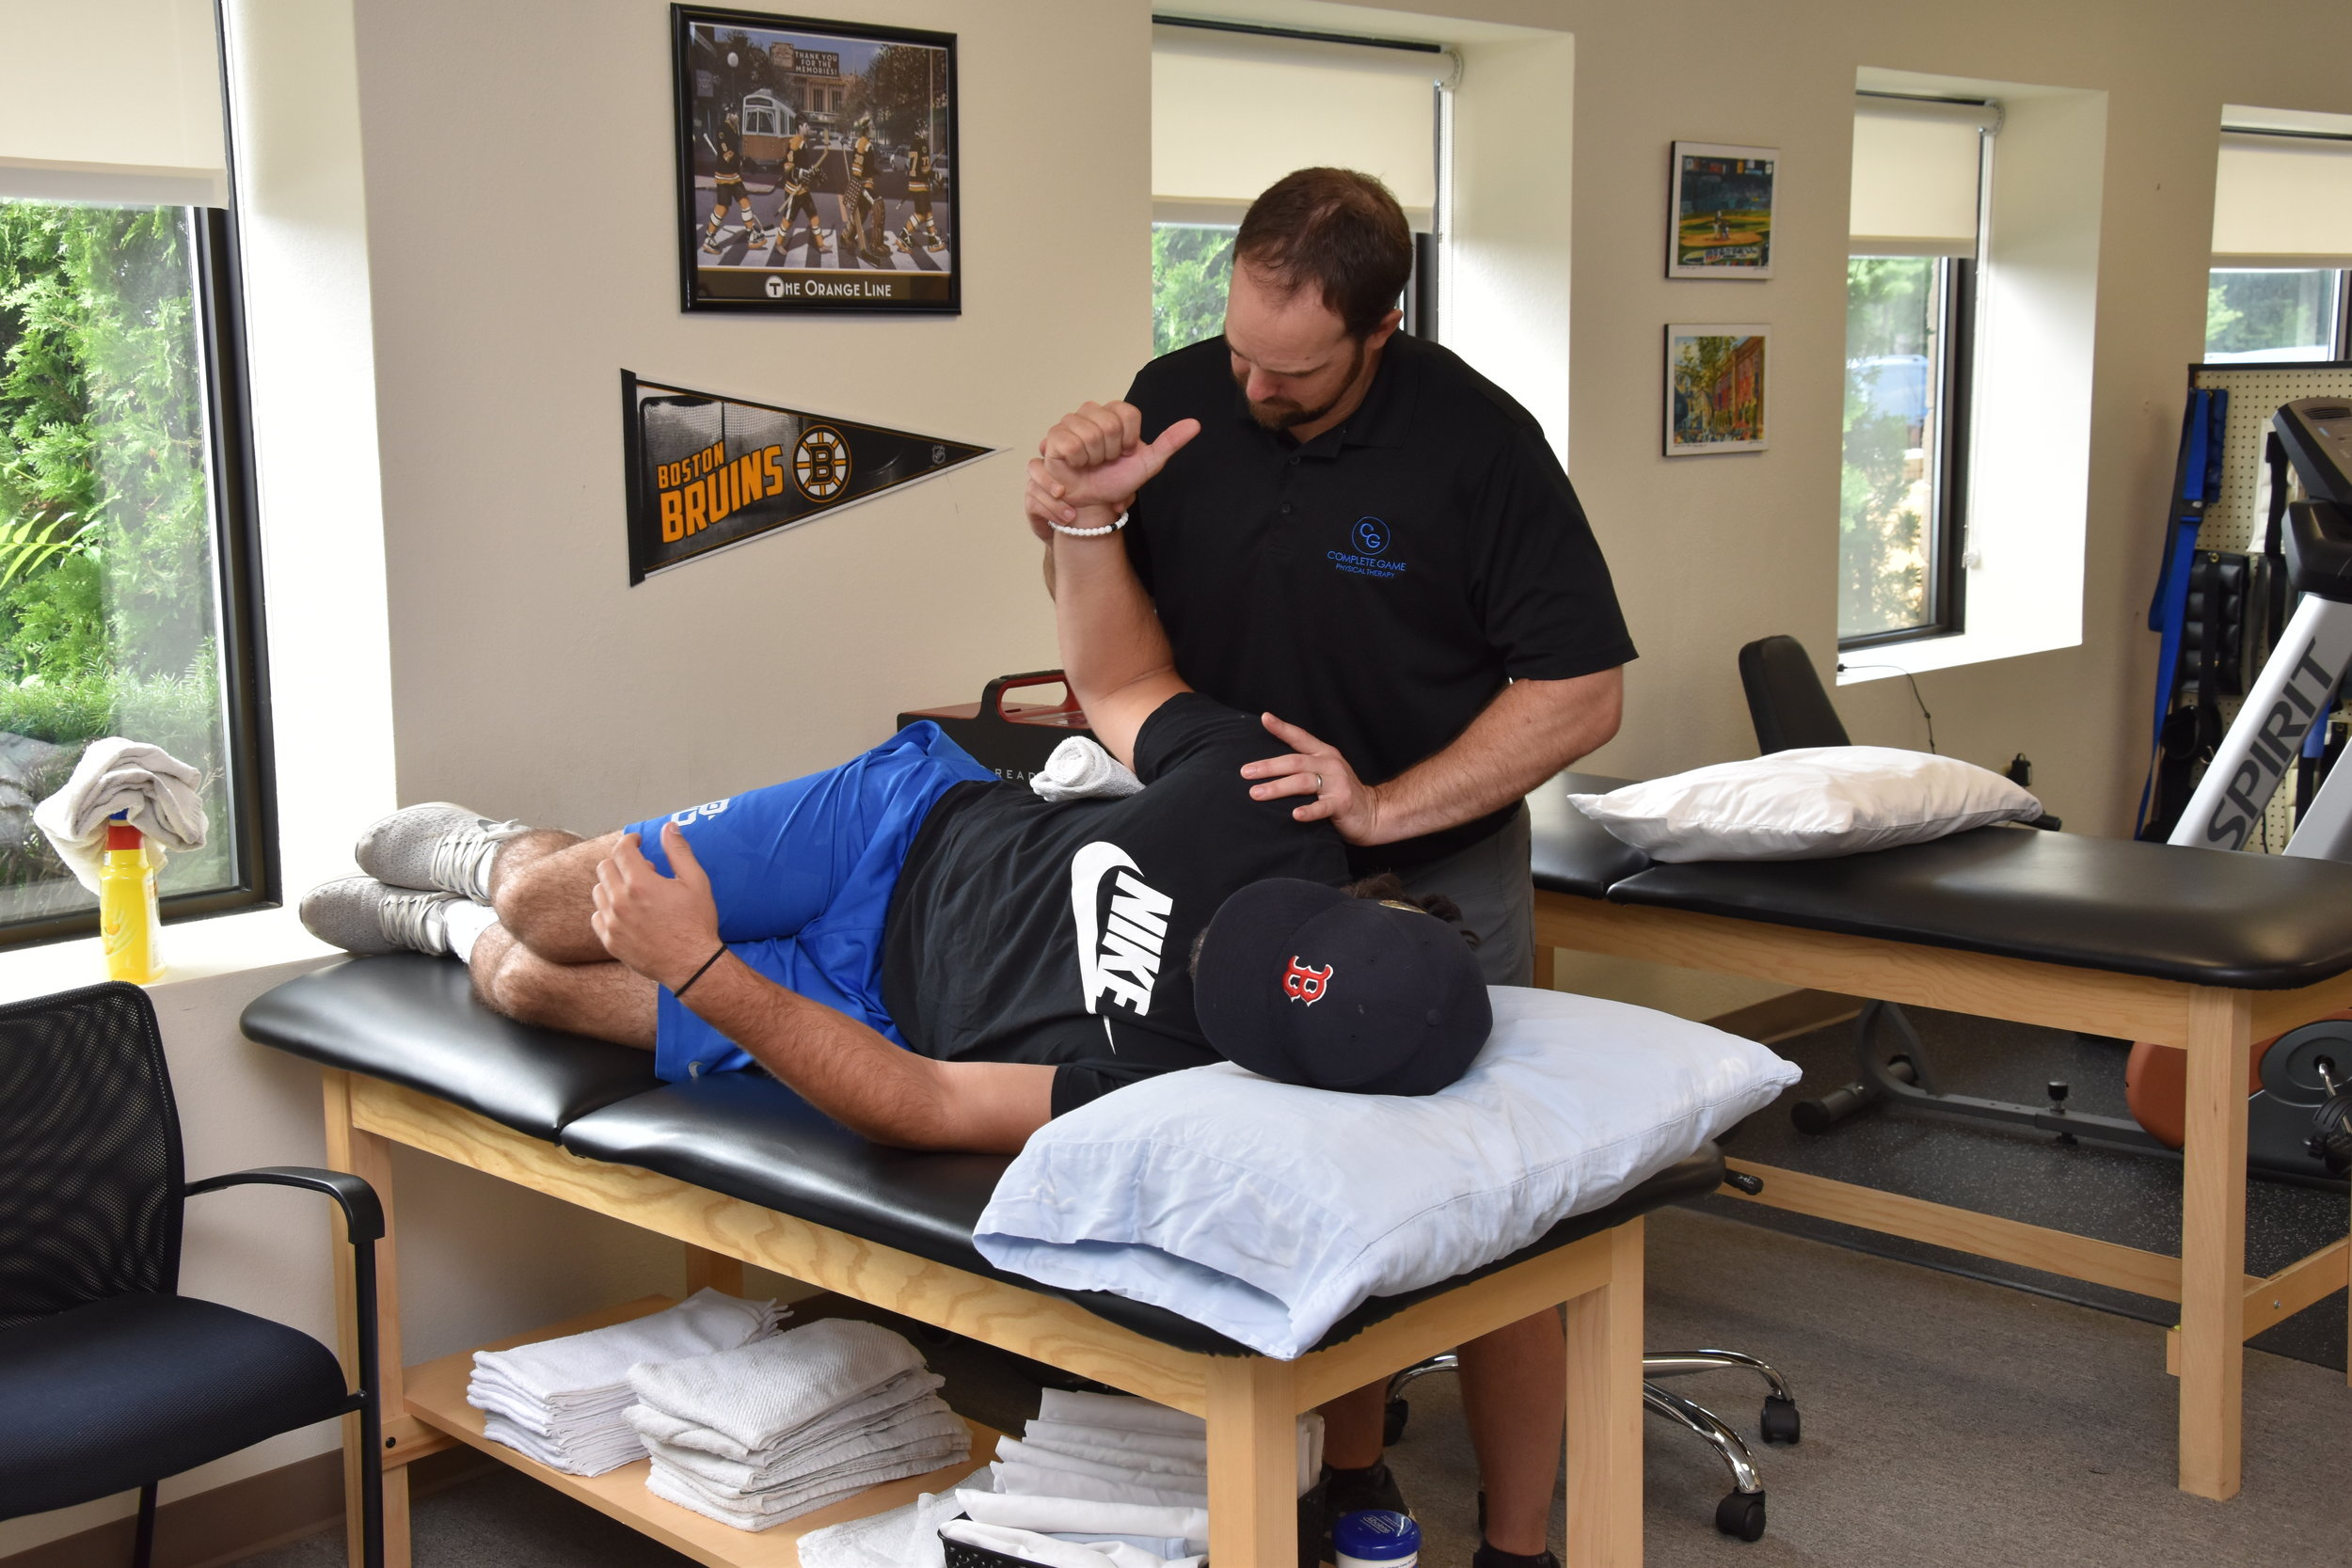 Althete and Sports<strong>Injury Treatment and Prevention</strong><a>LEARN MORE →</a>